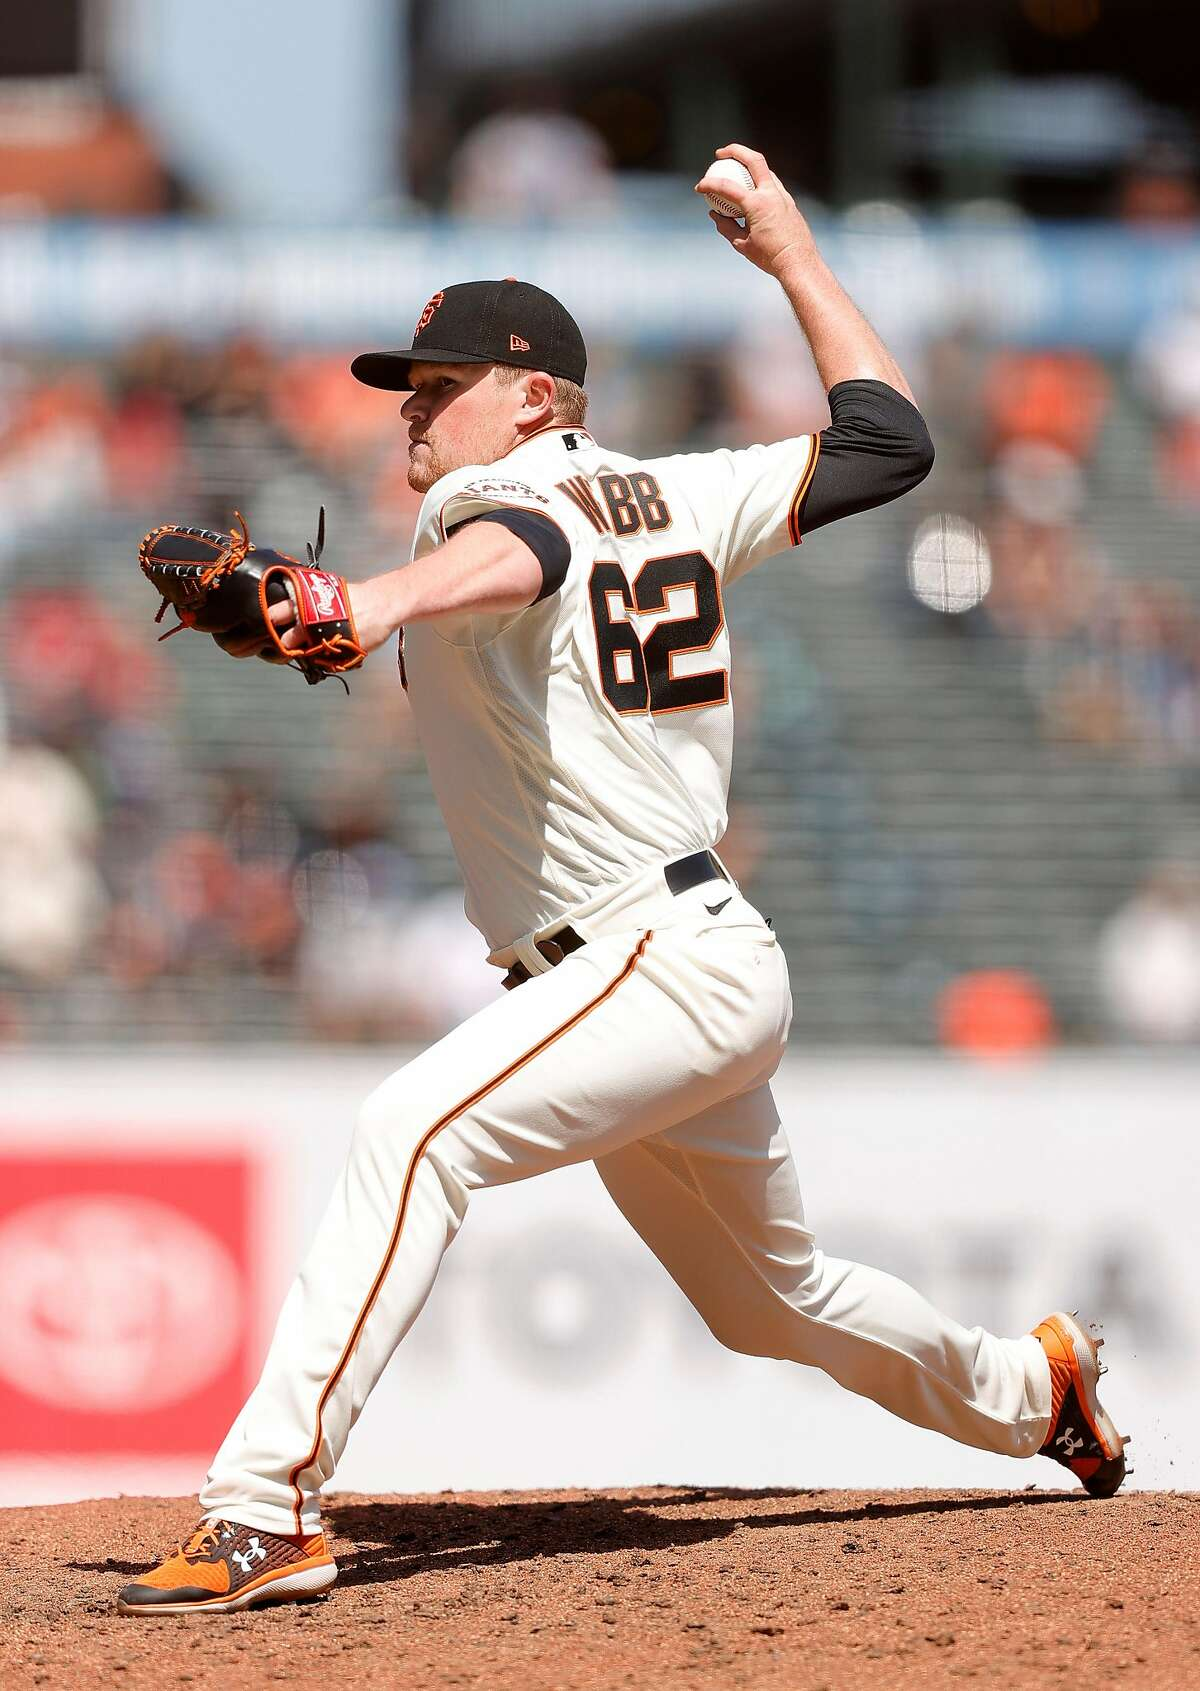 SAN FRANCISCO, CALIFORNIA - APRIL 14: Logan Webb #62 of the San Francisco Giants pitches against the Cincinnati Reds in the seventh inning at Oracle Park on April 14, 2021 in San Francisco, California. (Photo by Ezra Shaw/Getty Images)